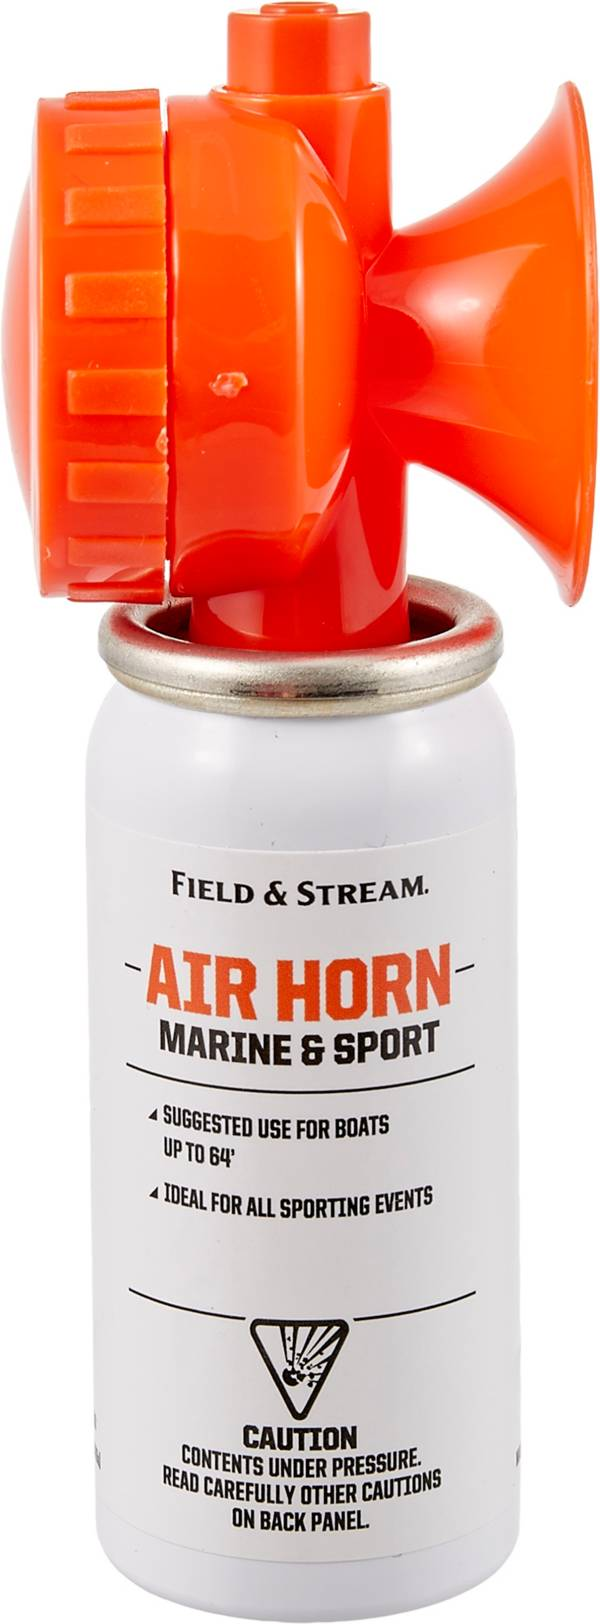 Field & Stream Marine & Sport Mini Air Horn product image